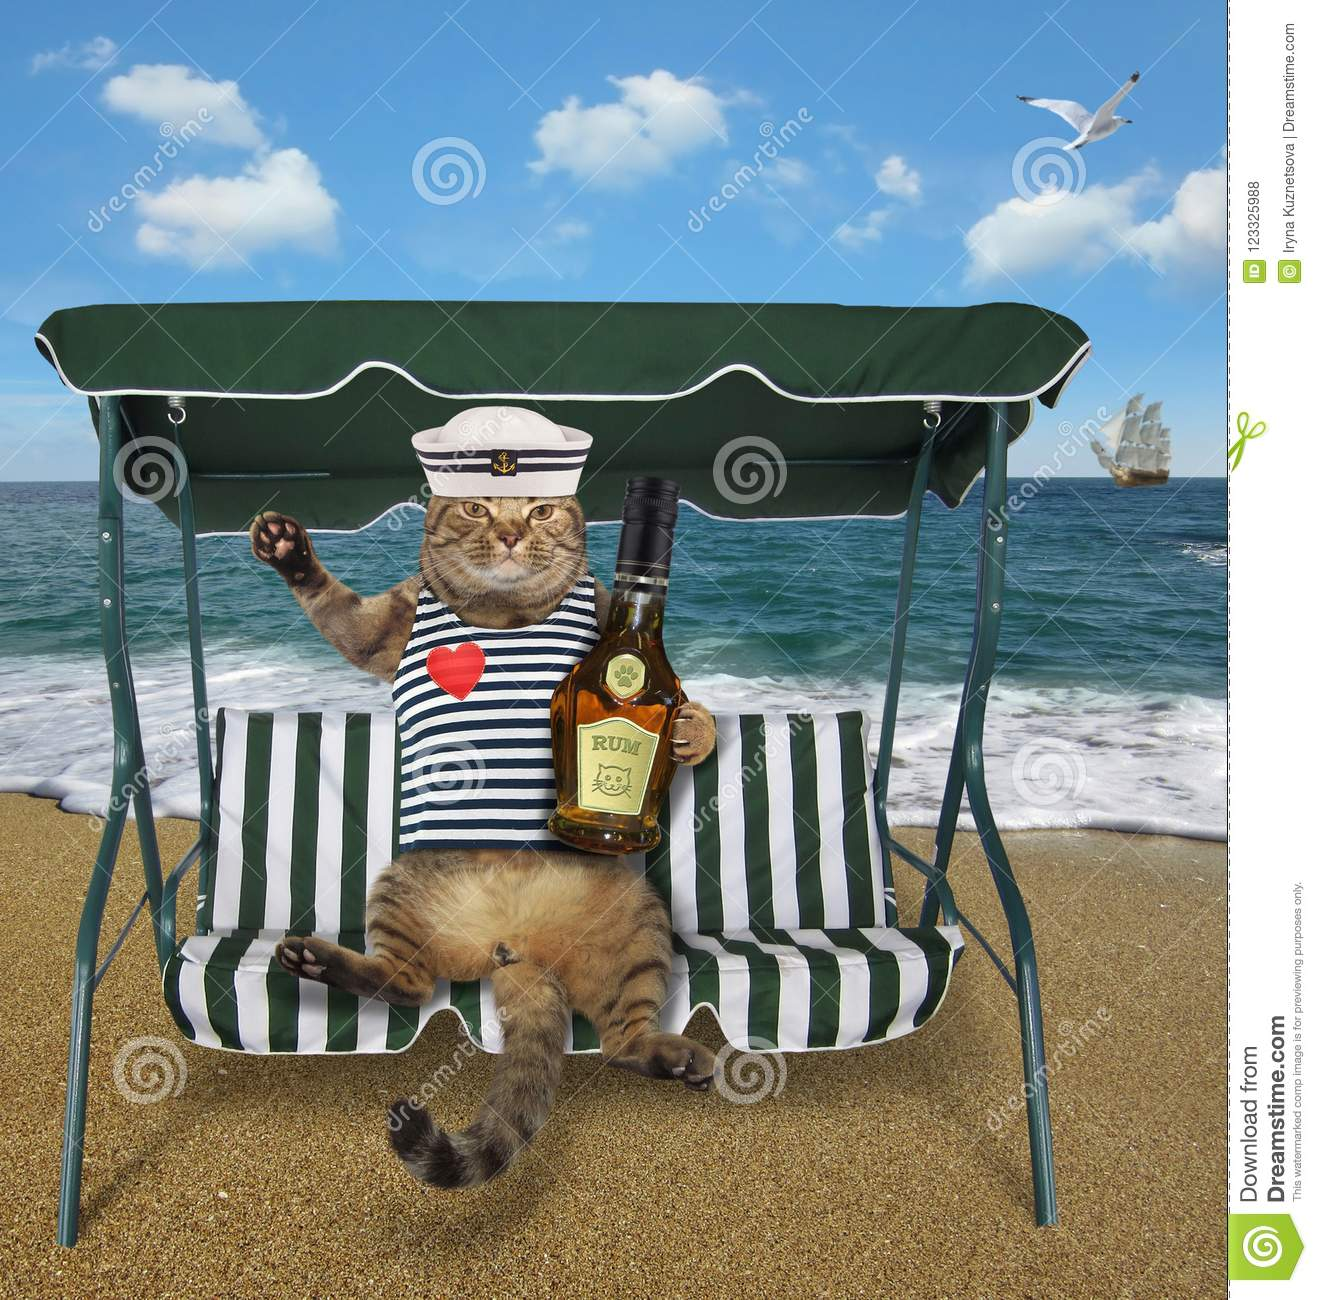 Cat with rum sits on a swing bench